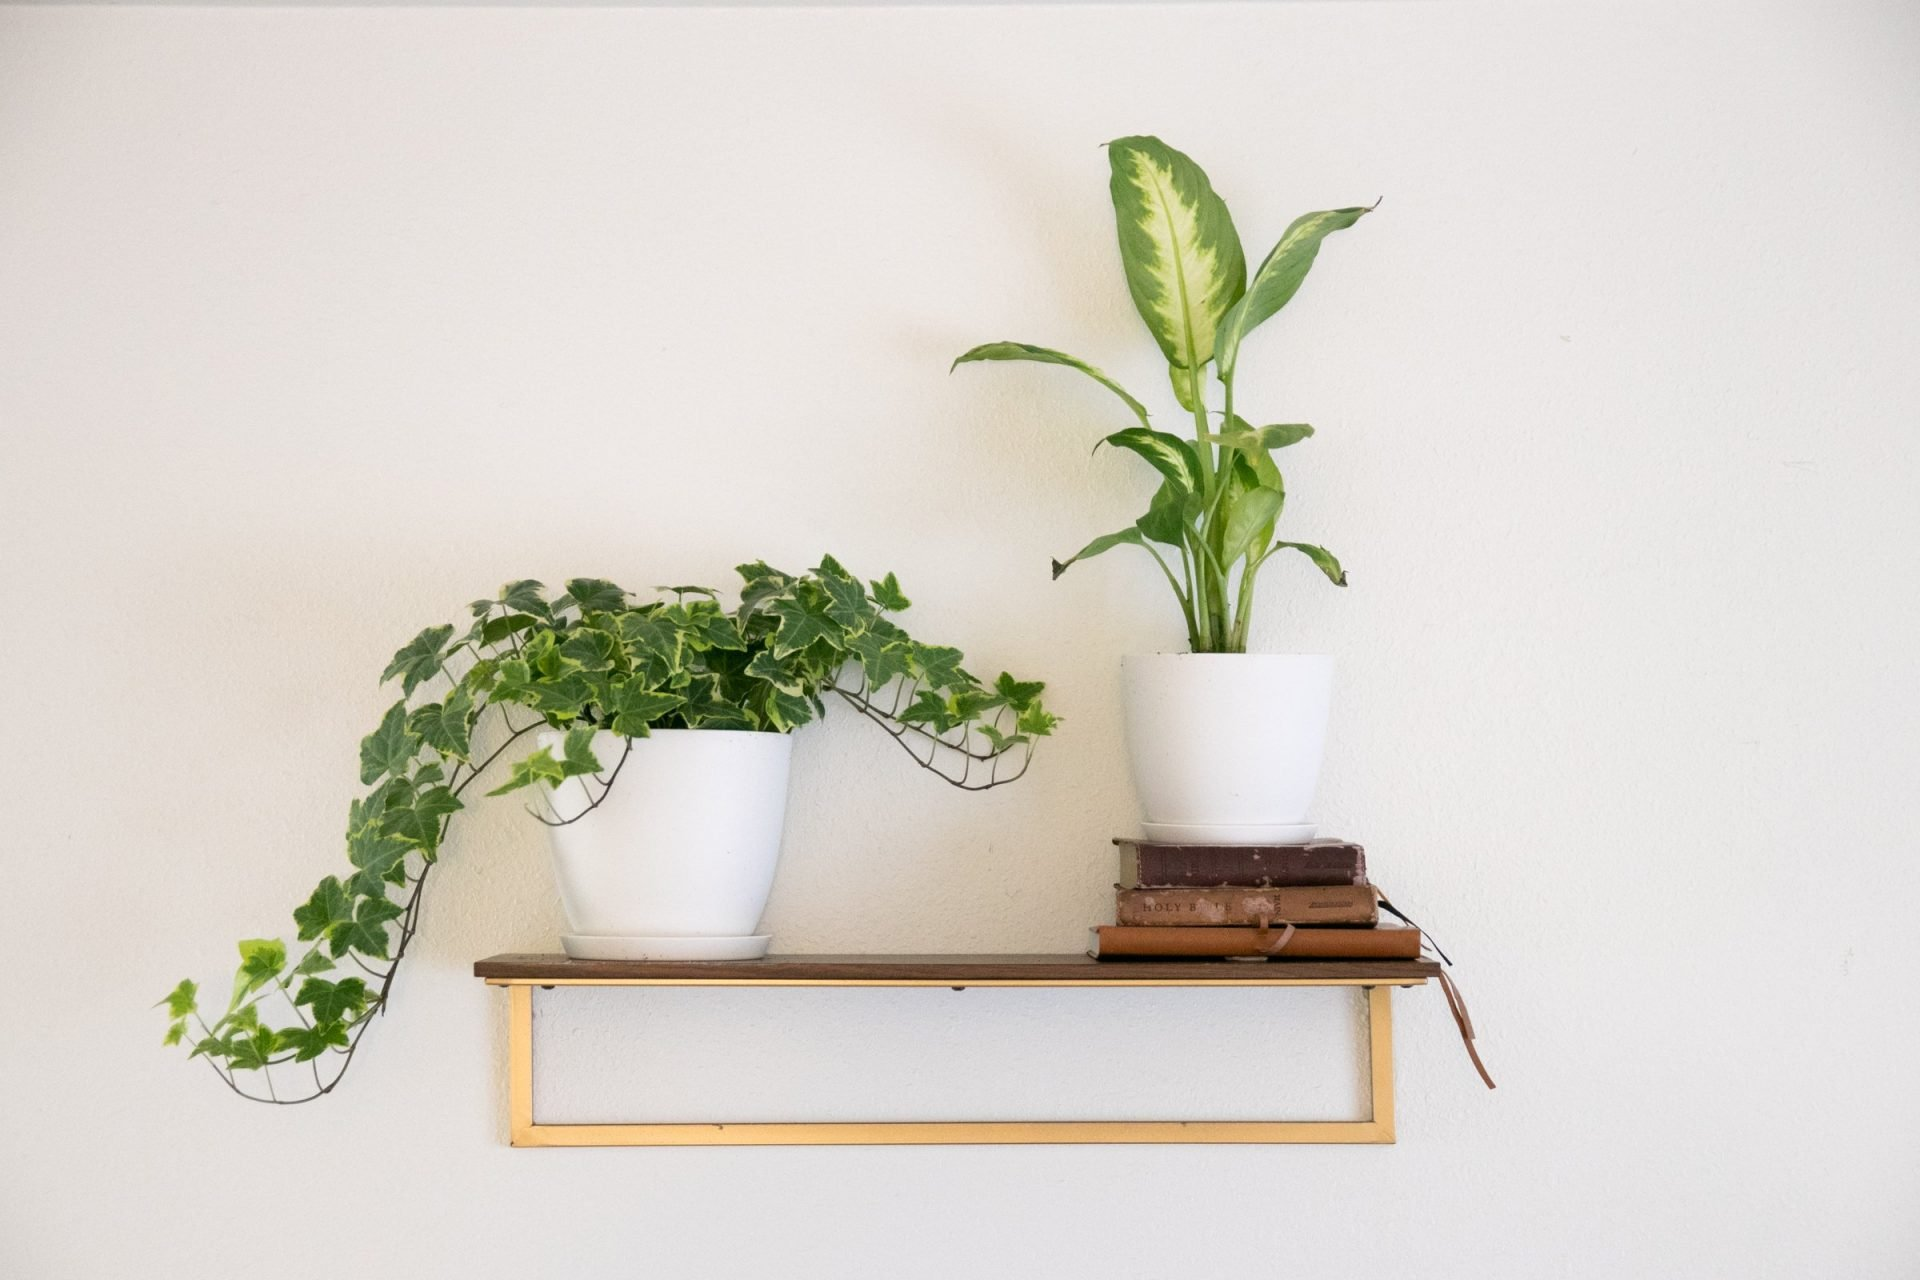 Plants And Stacked Books On Shelf